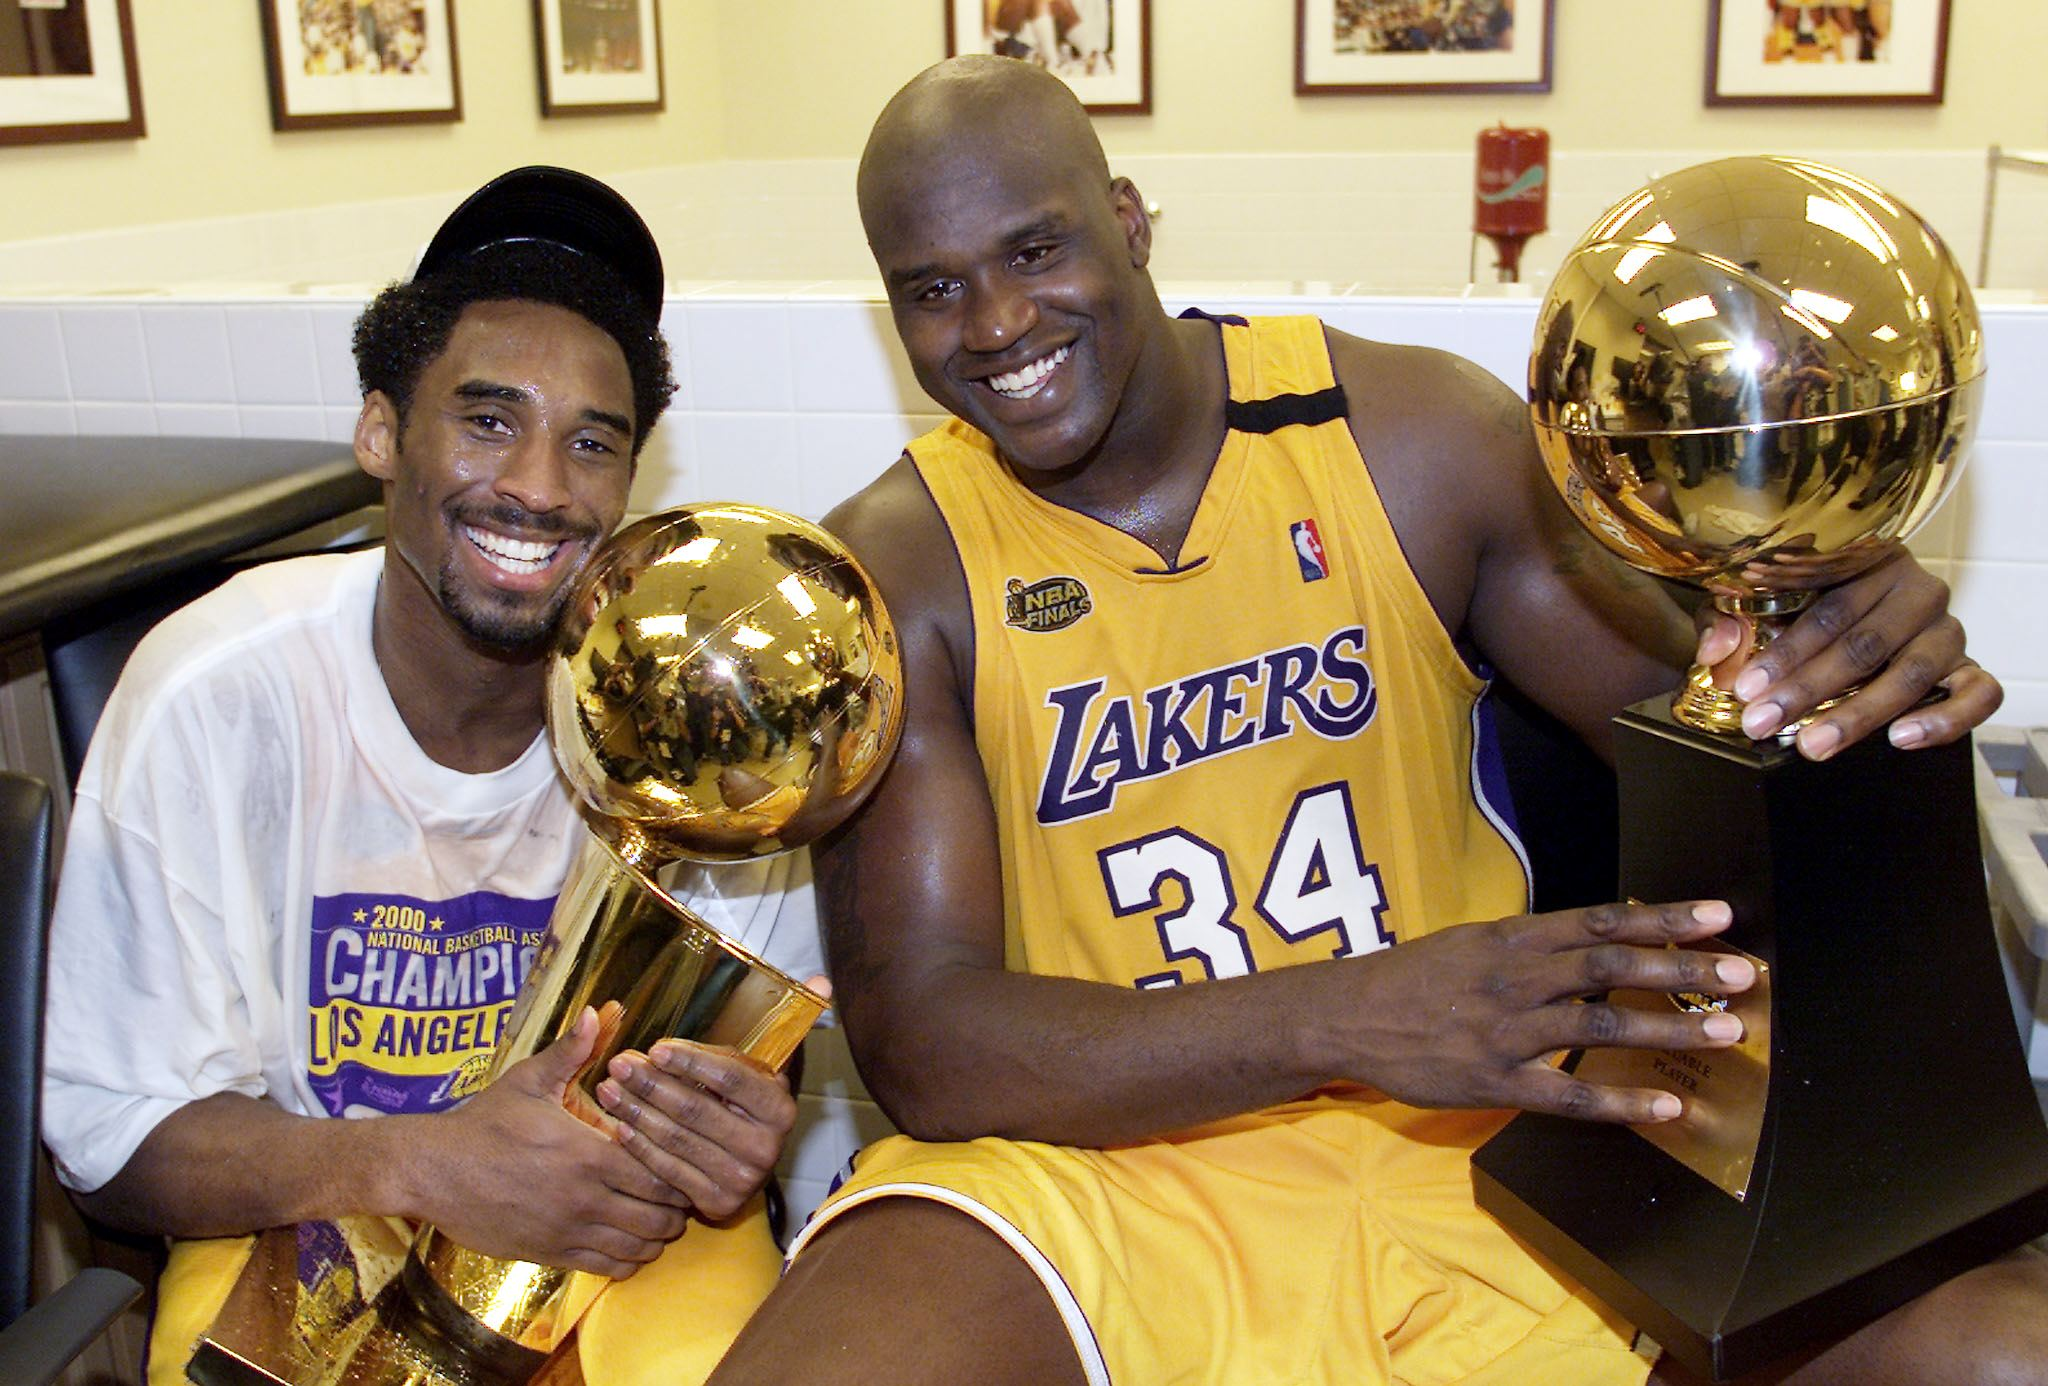 Bryant (left) holds the Larry O'Brian trophy as teammate Shaquille O'Neal holds the MVP trophy after winning their first NBA Championship against the Indiana Pacers at Staples Center in Los Angeles on June 19, 2000. It would be the first of three consecutive titles for the star duo.